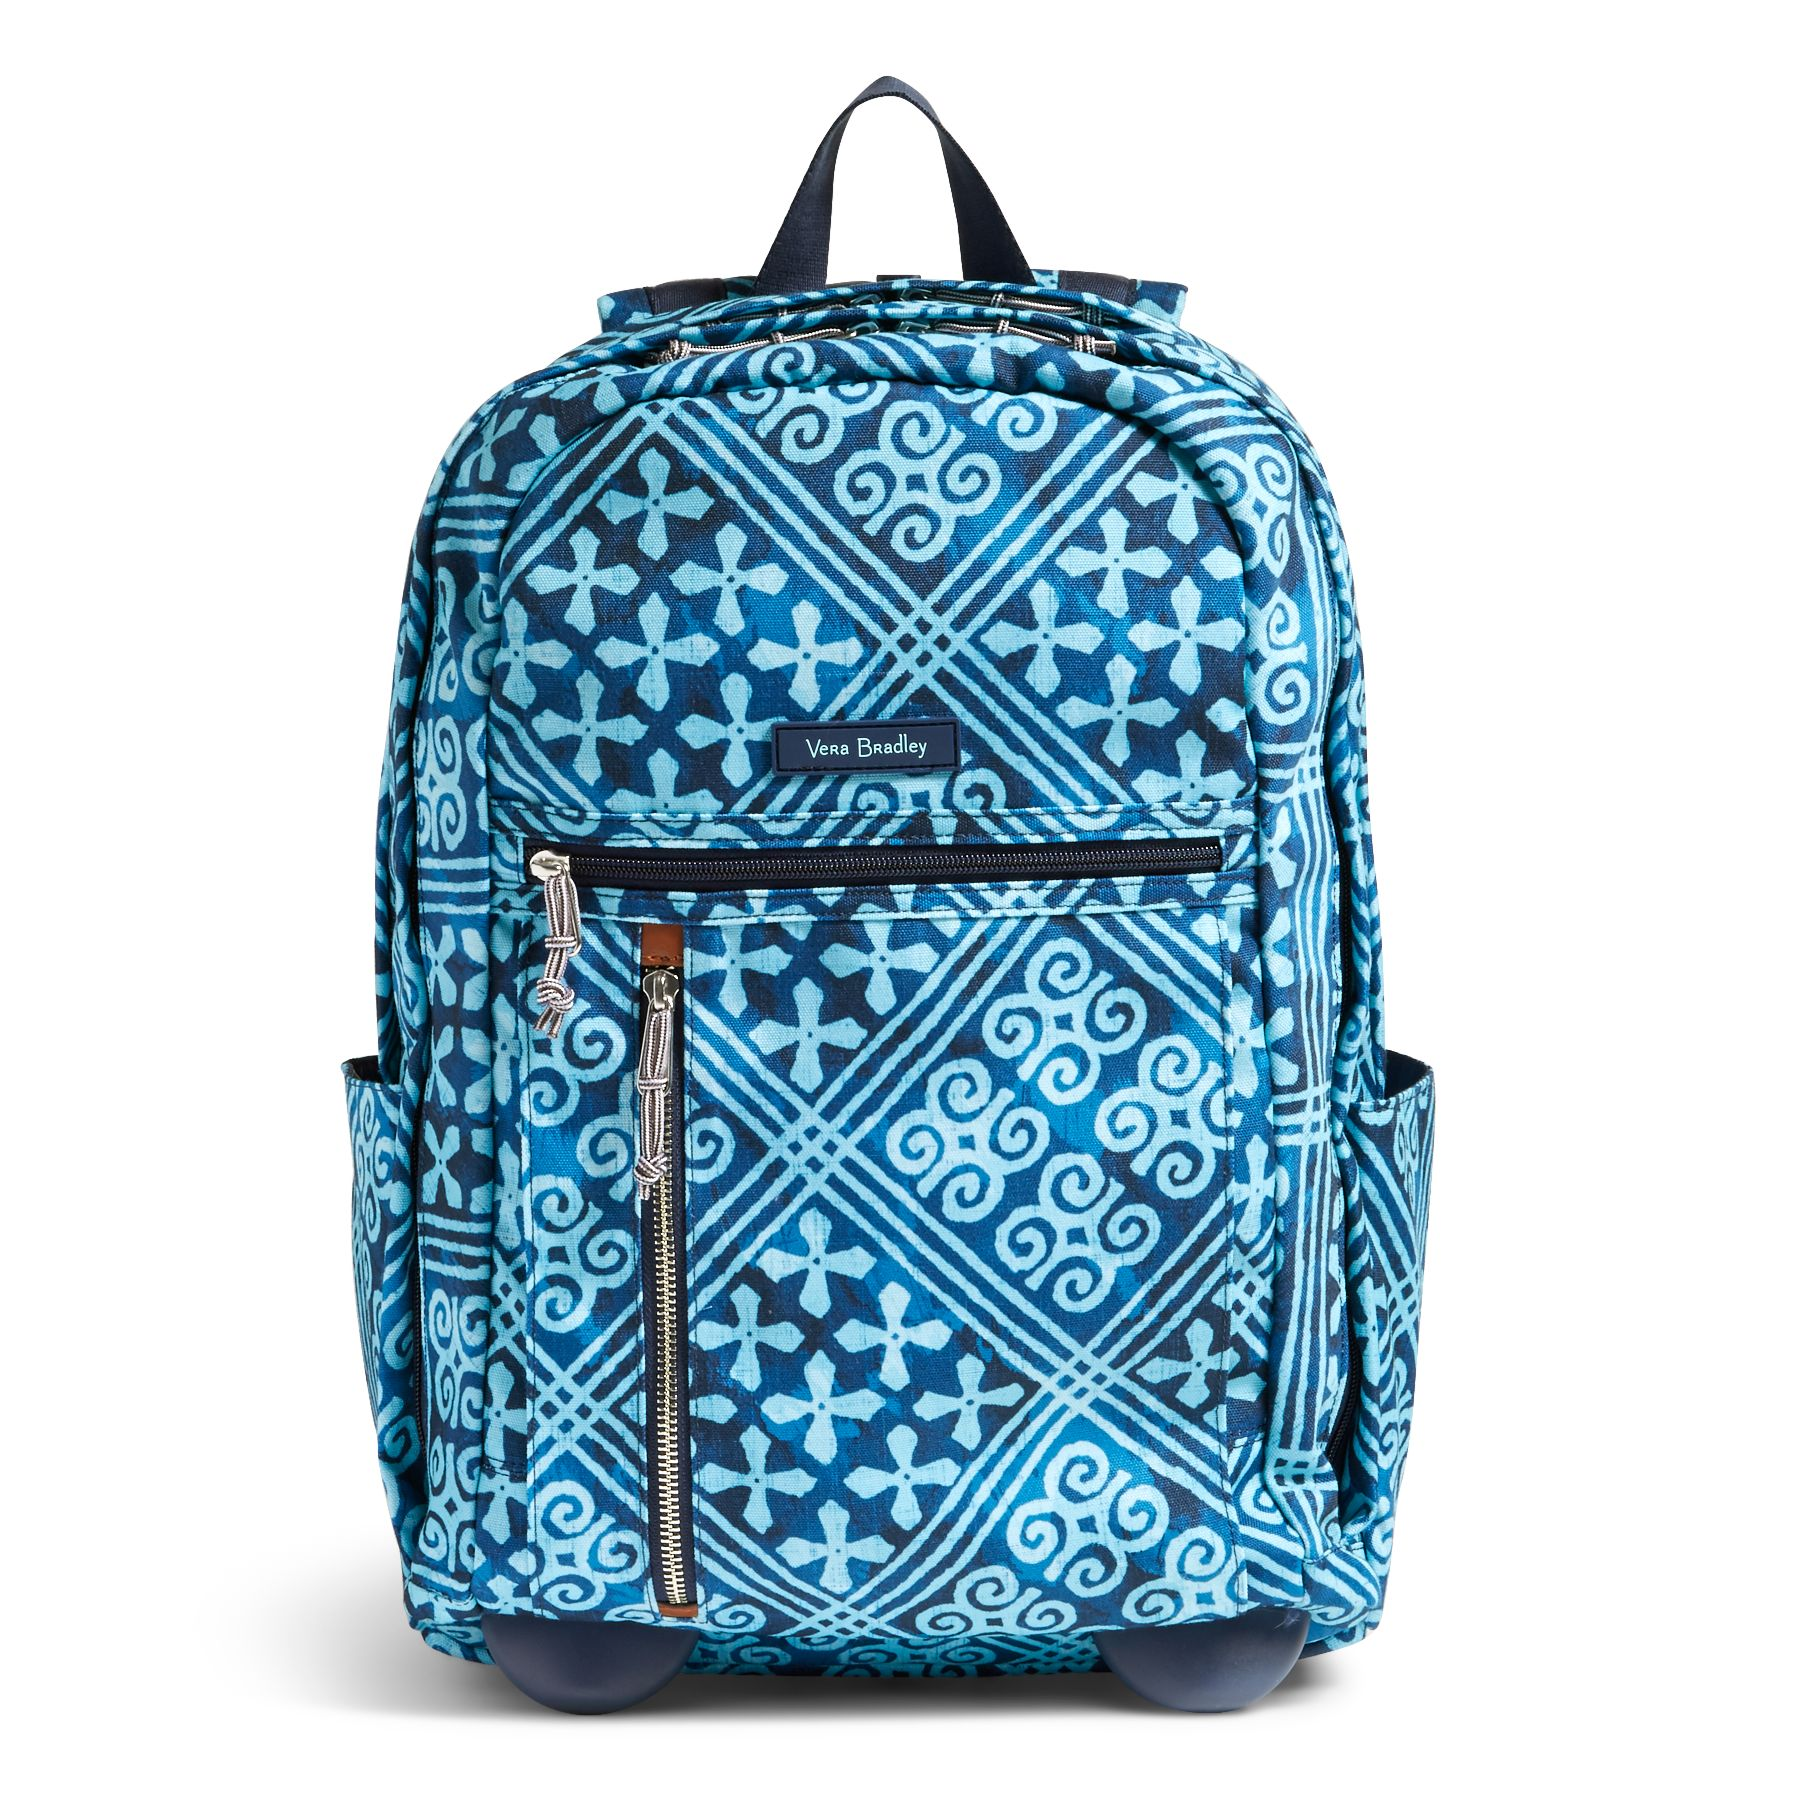 Travel Backpacks for Women - Carry-On Backpacks | Vera Bradley